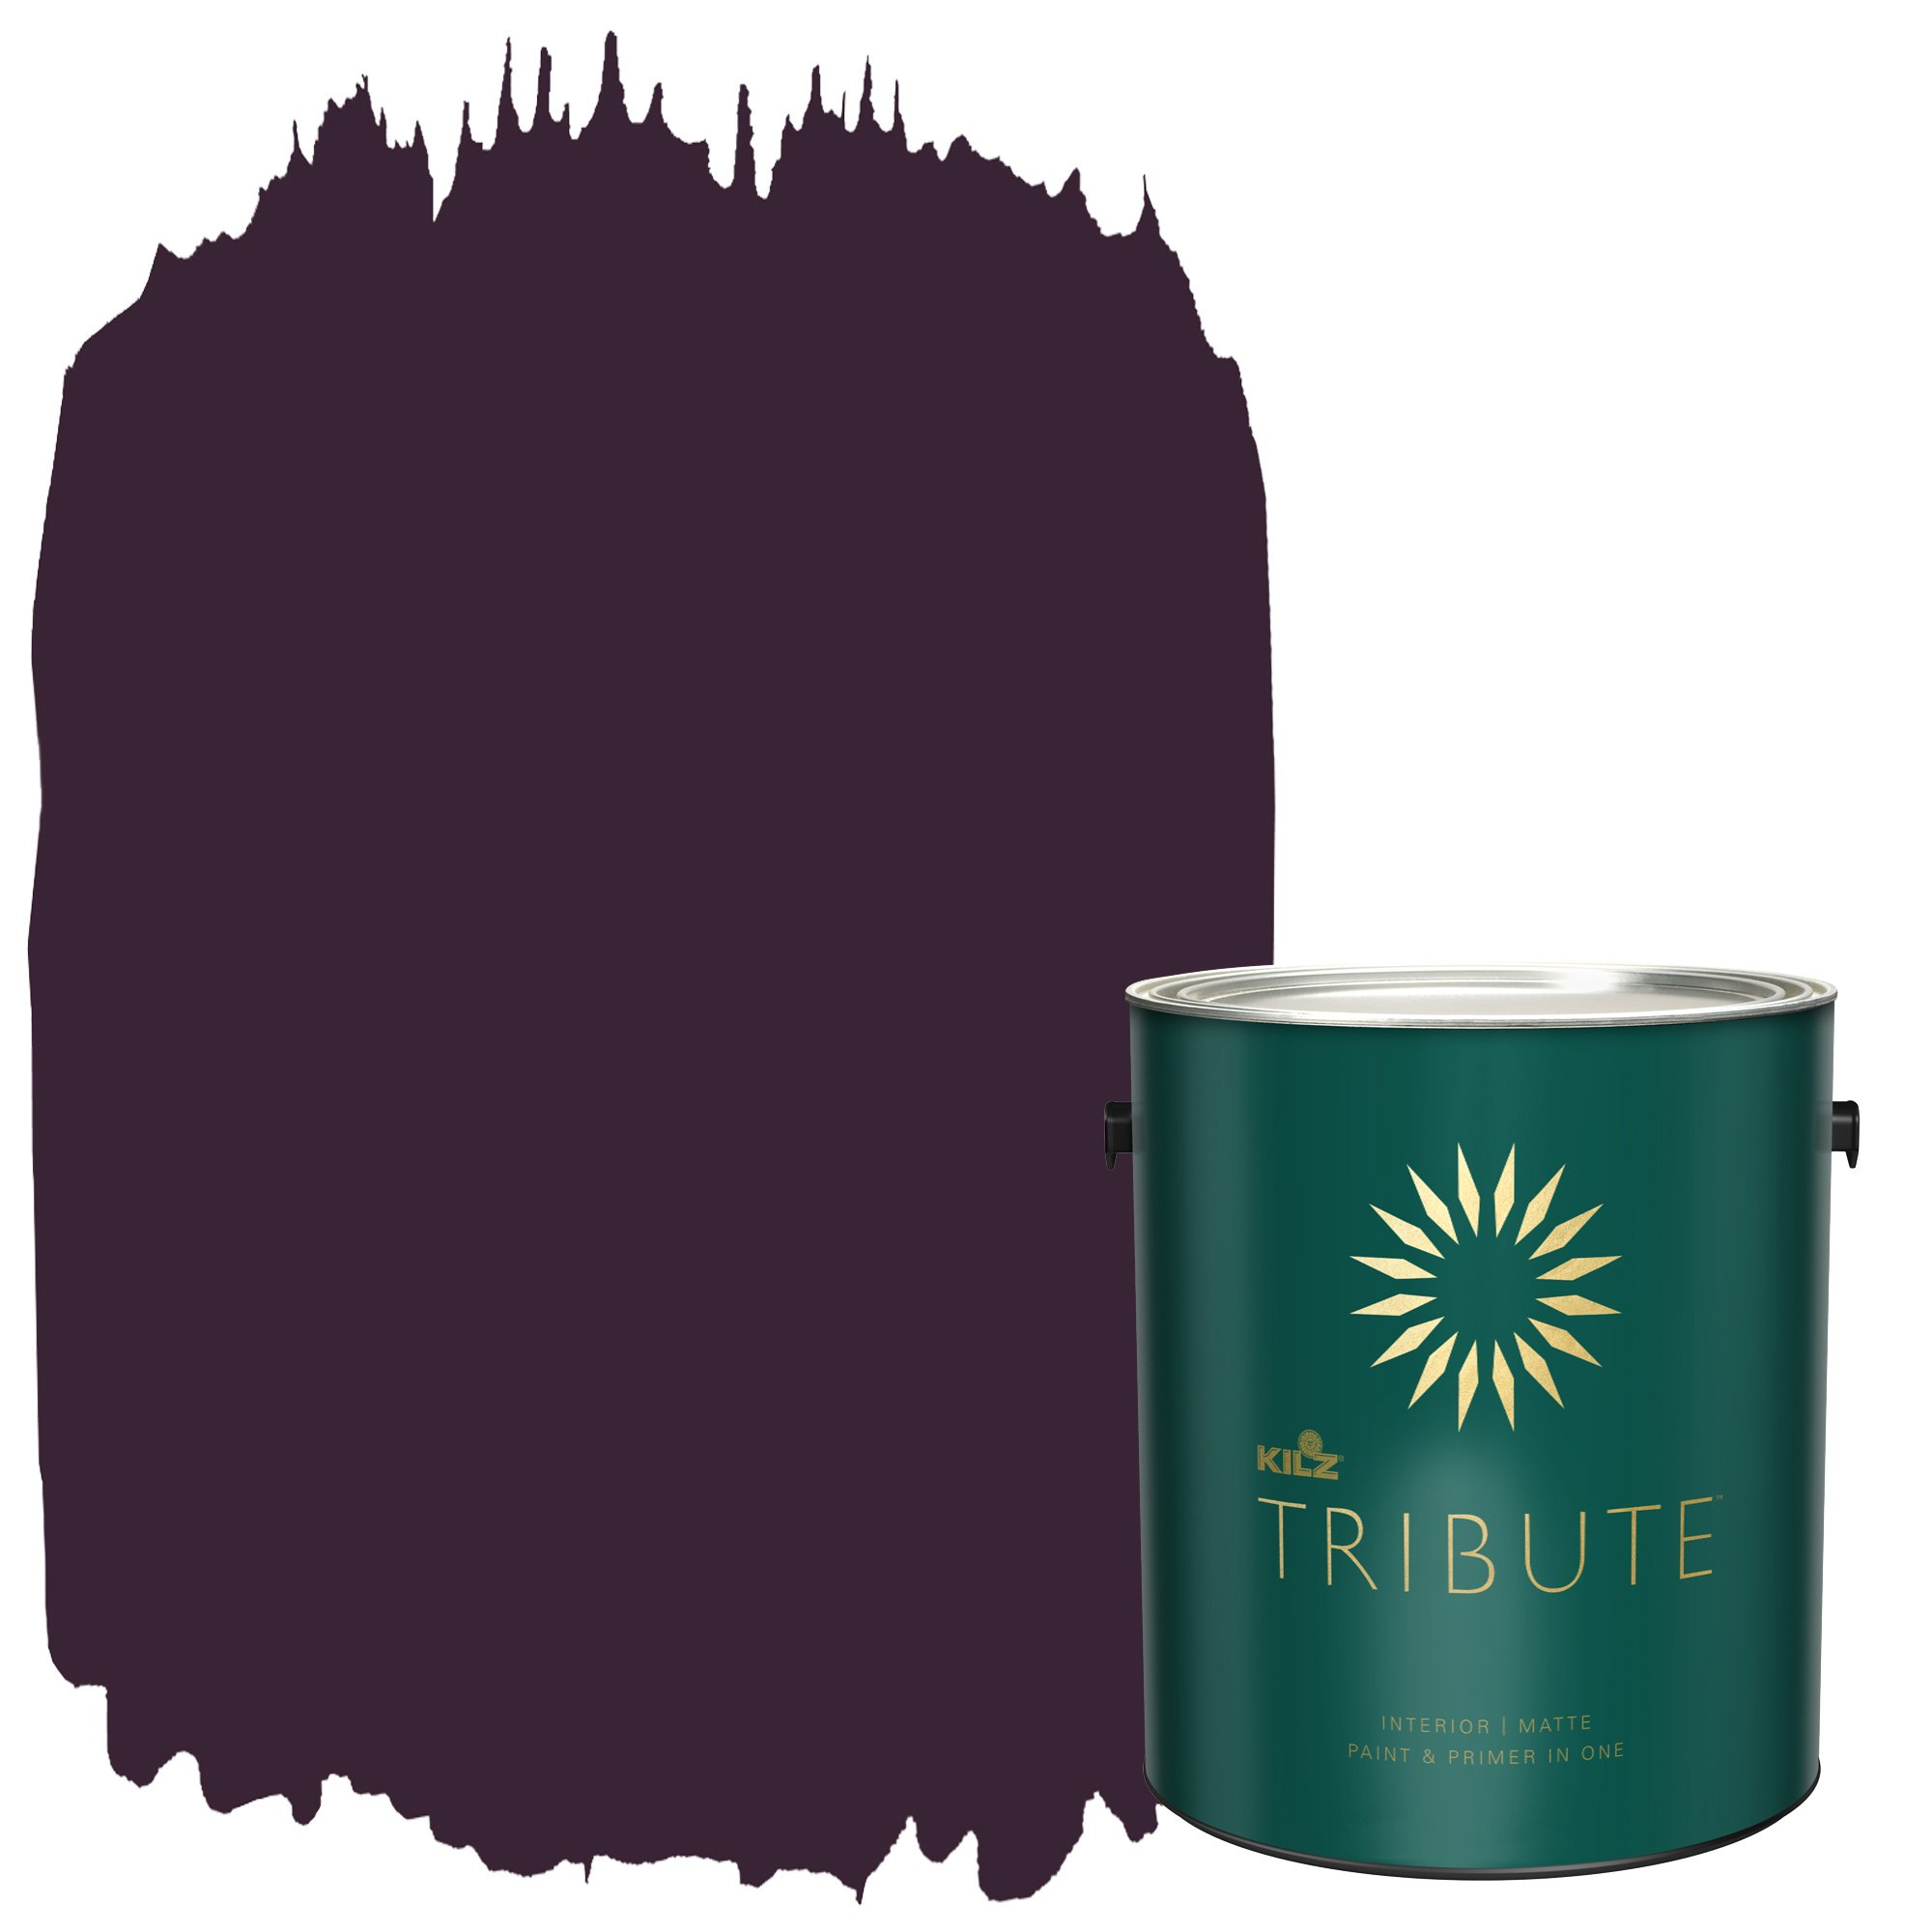 KILZ TRIBUTE Interior Matte Paint and Primer in One, 1 Gallon, Beetroot Purple (TB-100)